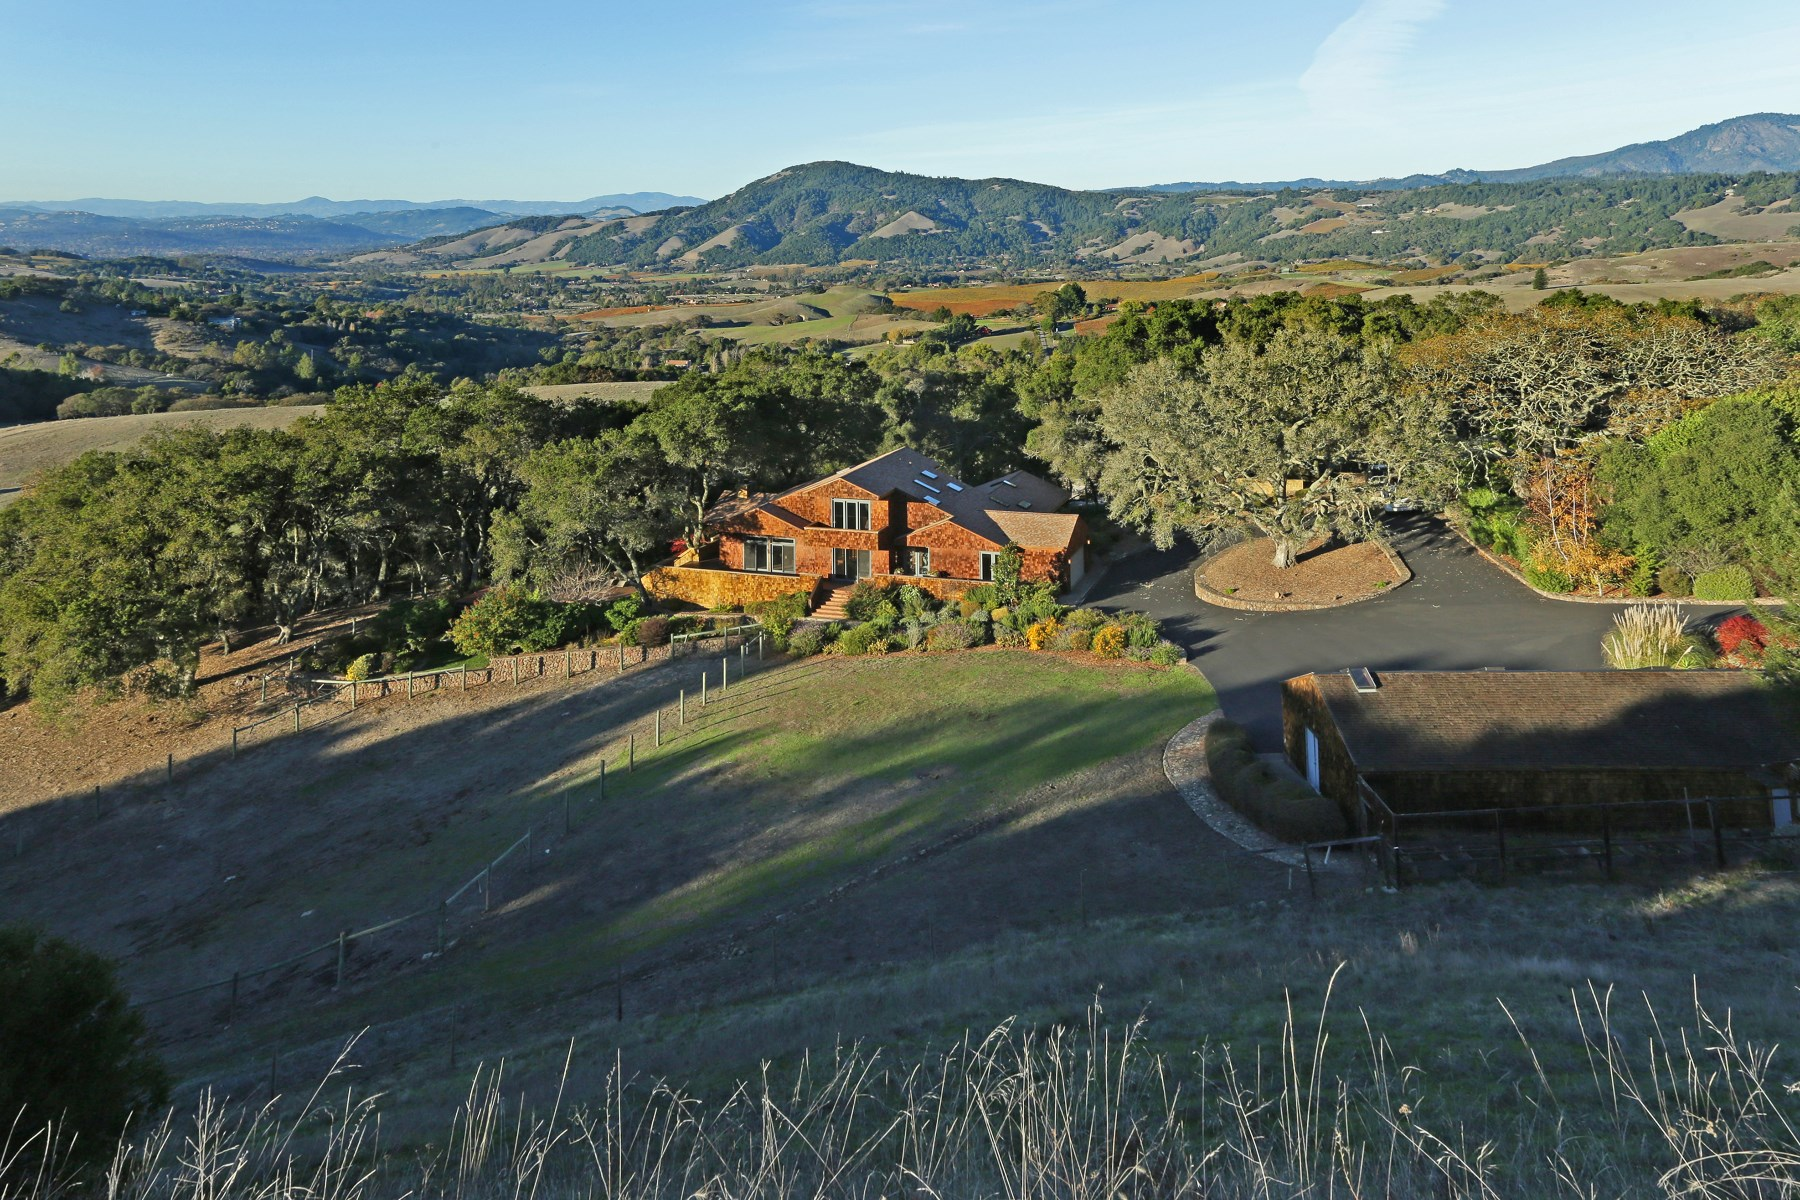 Moradia para Venda às Bennett Valley Country Living 5155 Burnham Ranch Rd Santa Rosa, Califórnia 95404 Estados Unidos